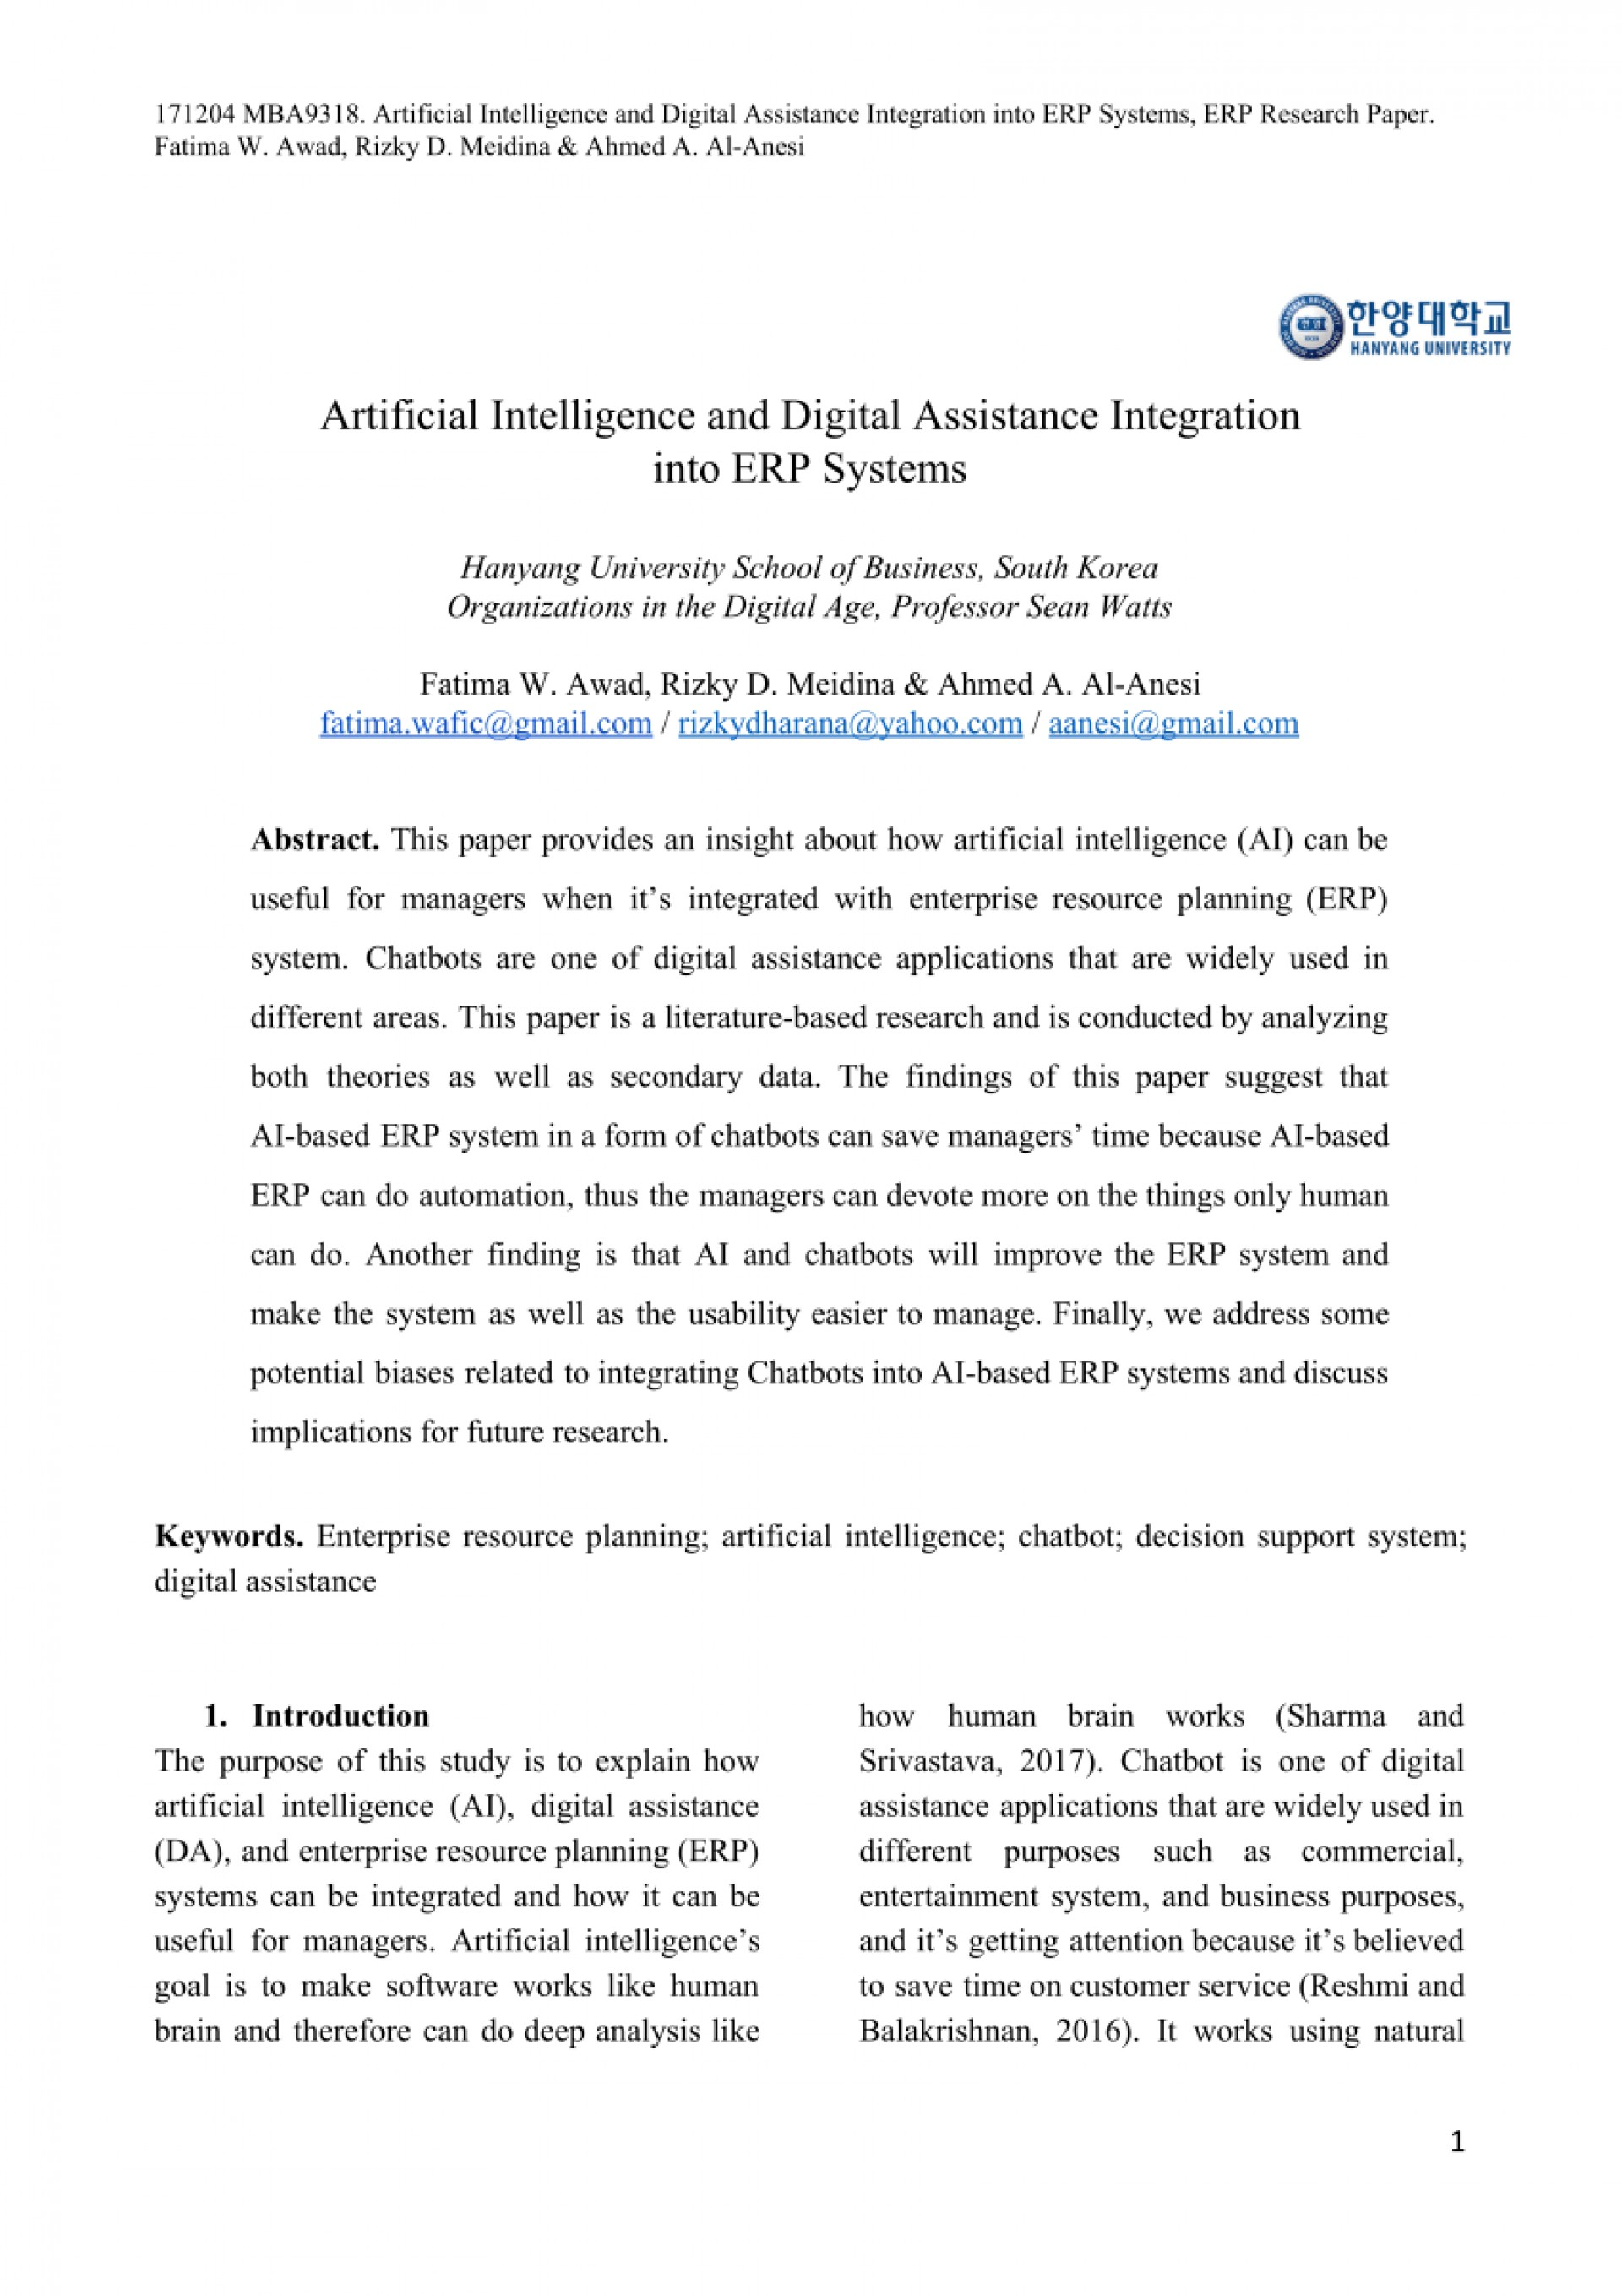 001 Artificial Intelligence Research Paper Topics Archaicawful Pdf 2018 1920